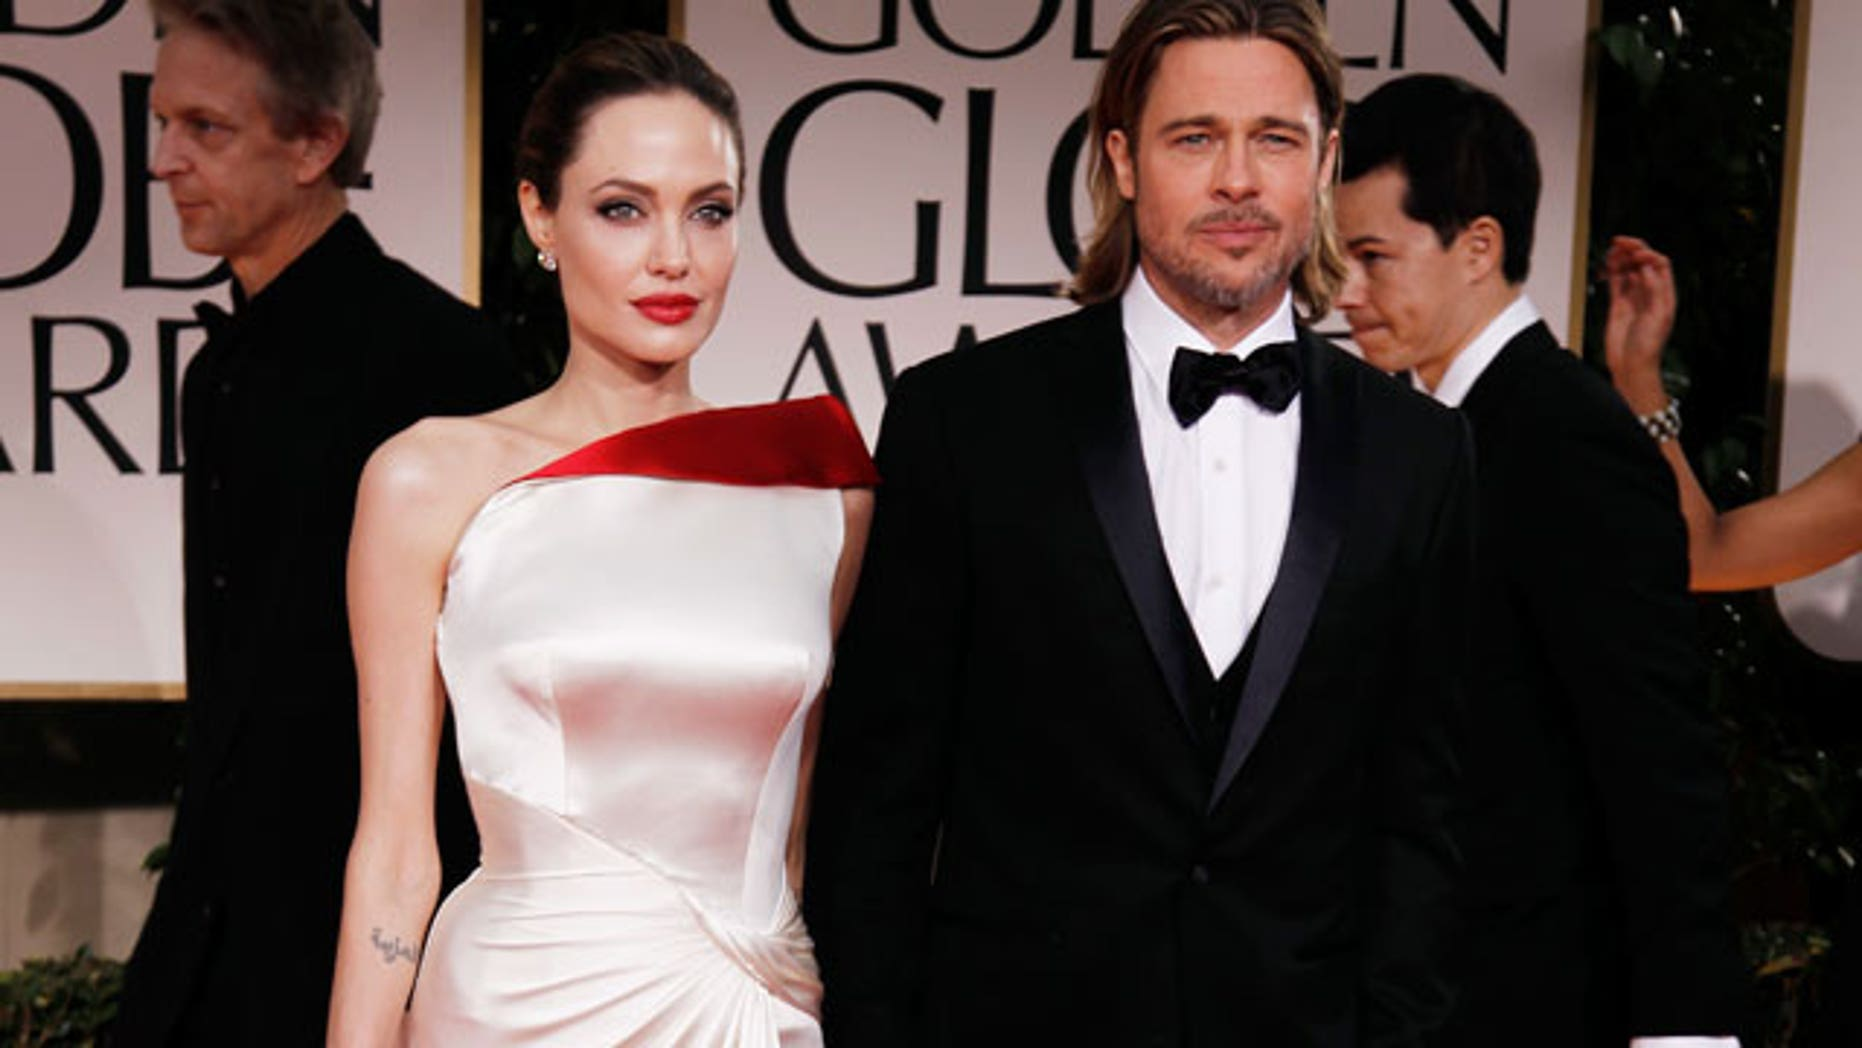 Angelina Jolie and Brad Pitt at the 2012 Golden Globes (AP)